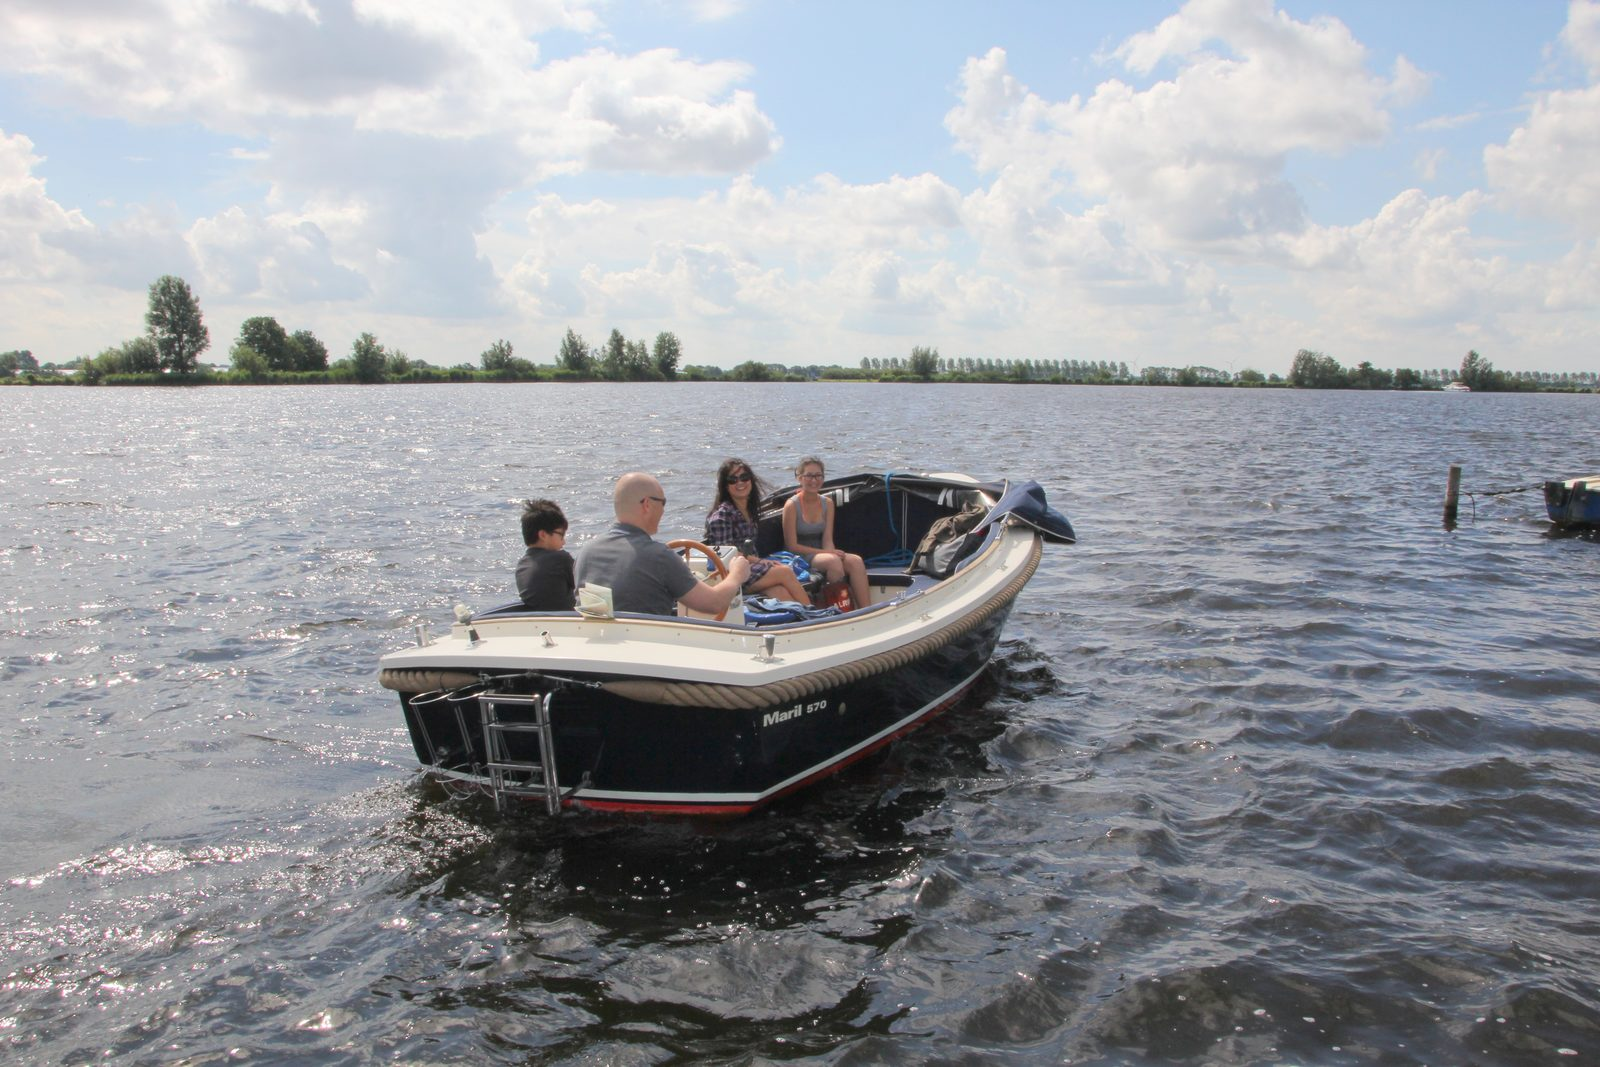 Boat rental to park guests